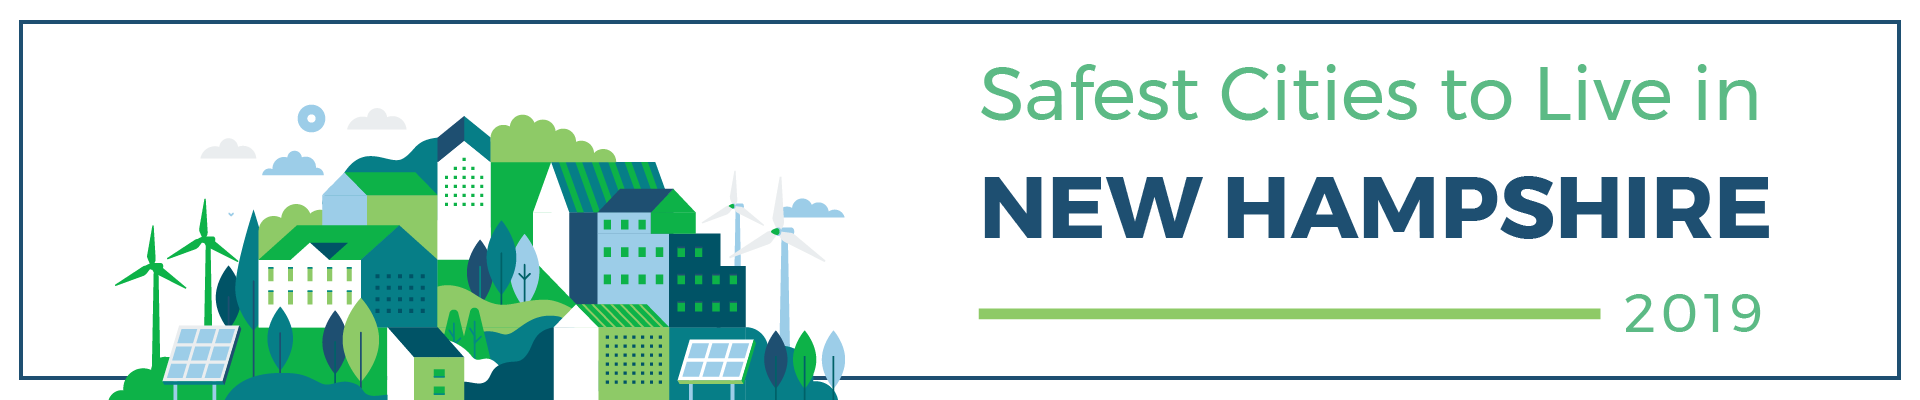 header - safest_cities_new_hampshire_2019